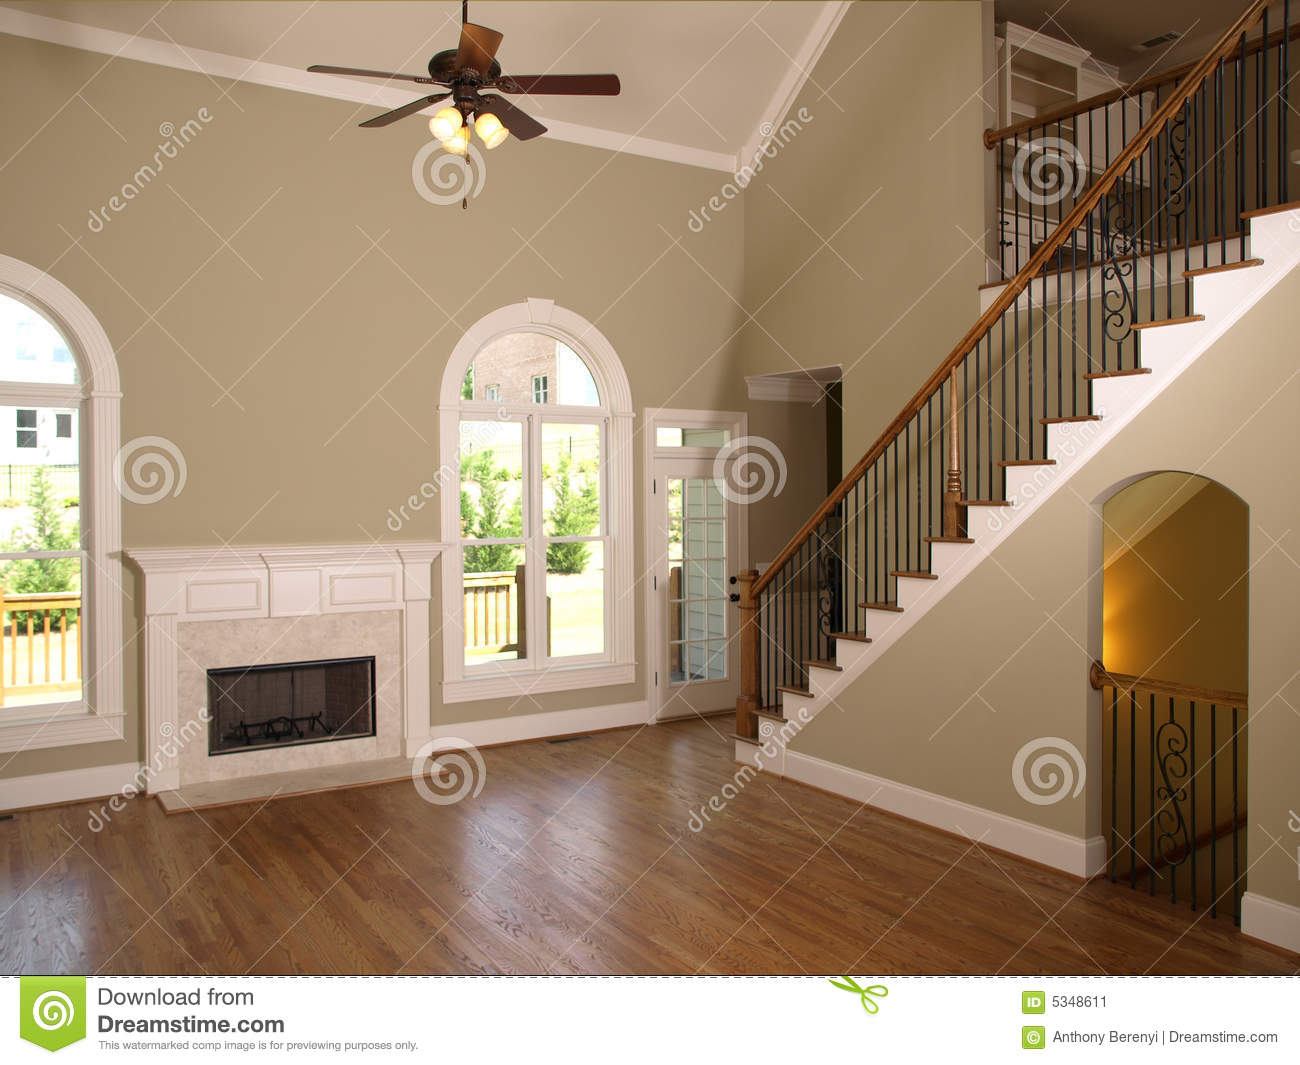 Luxury model home living room staircase stock image for Modelos de salas de estar para casas